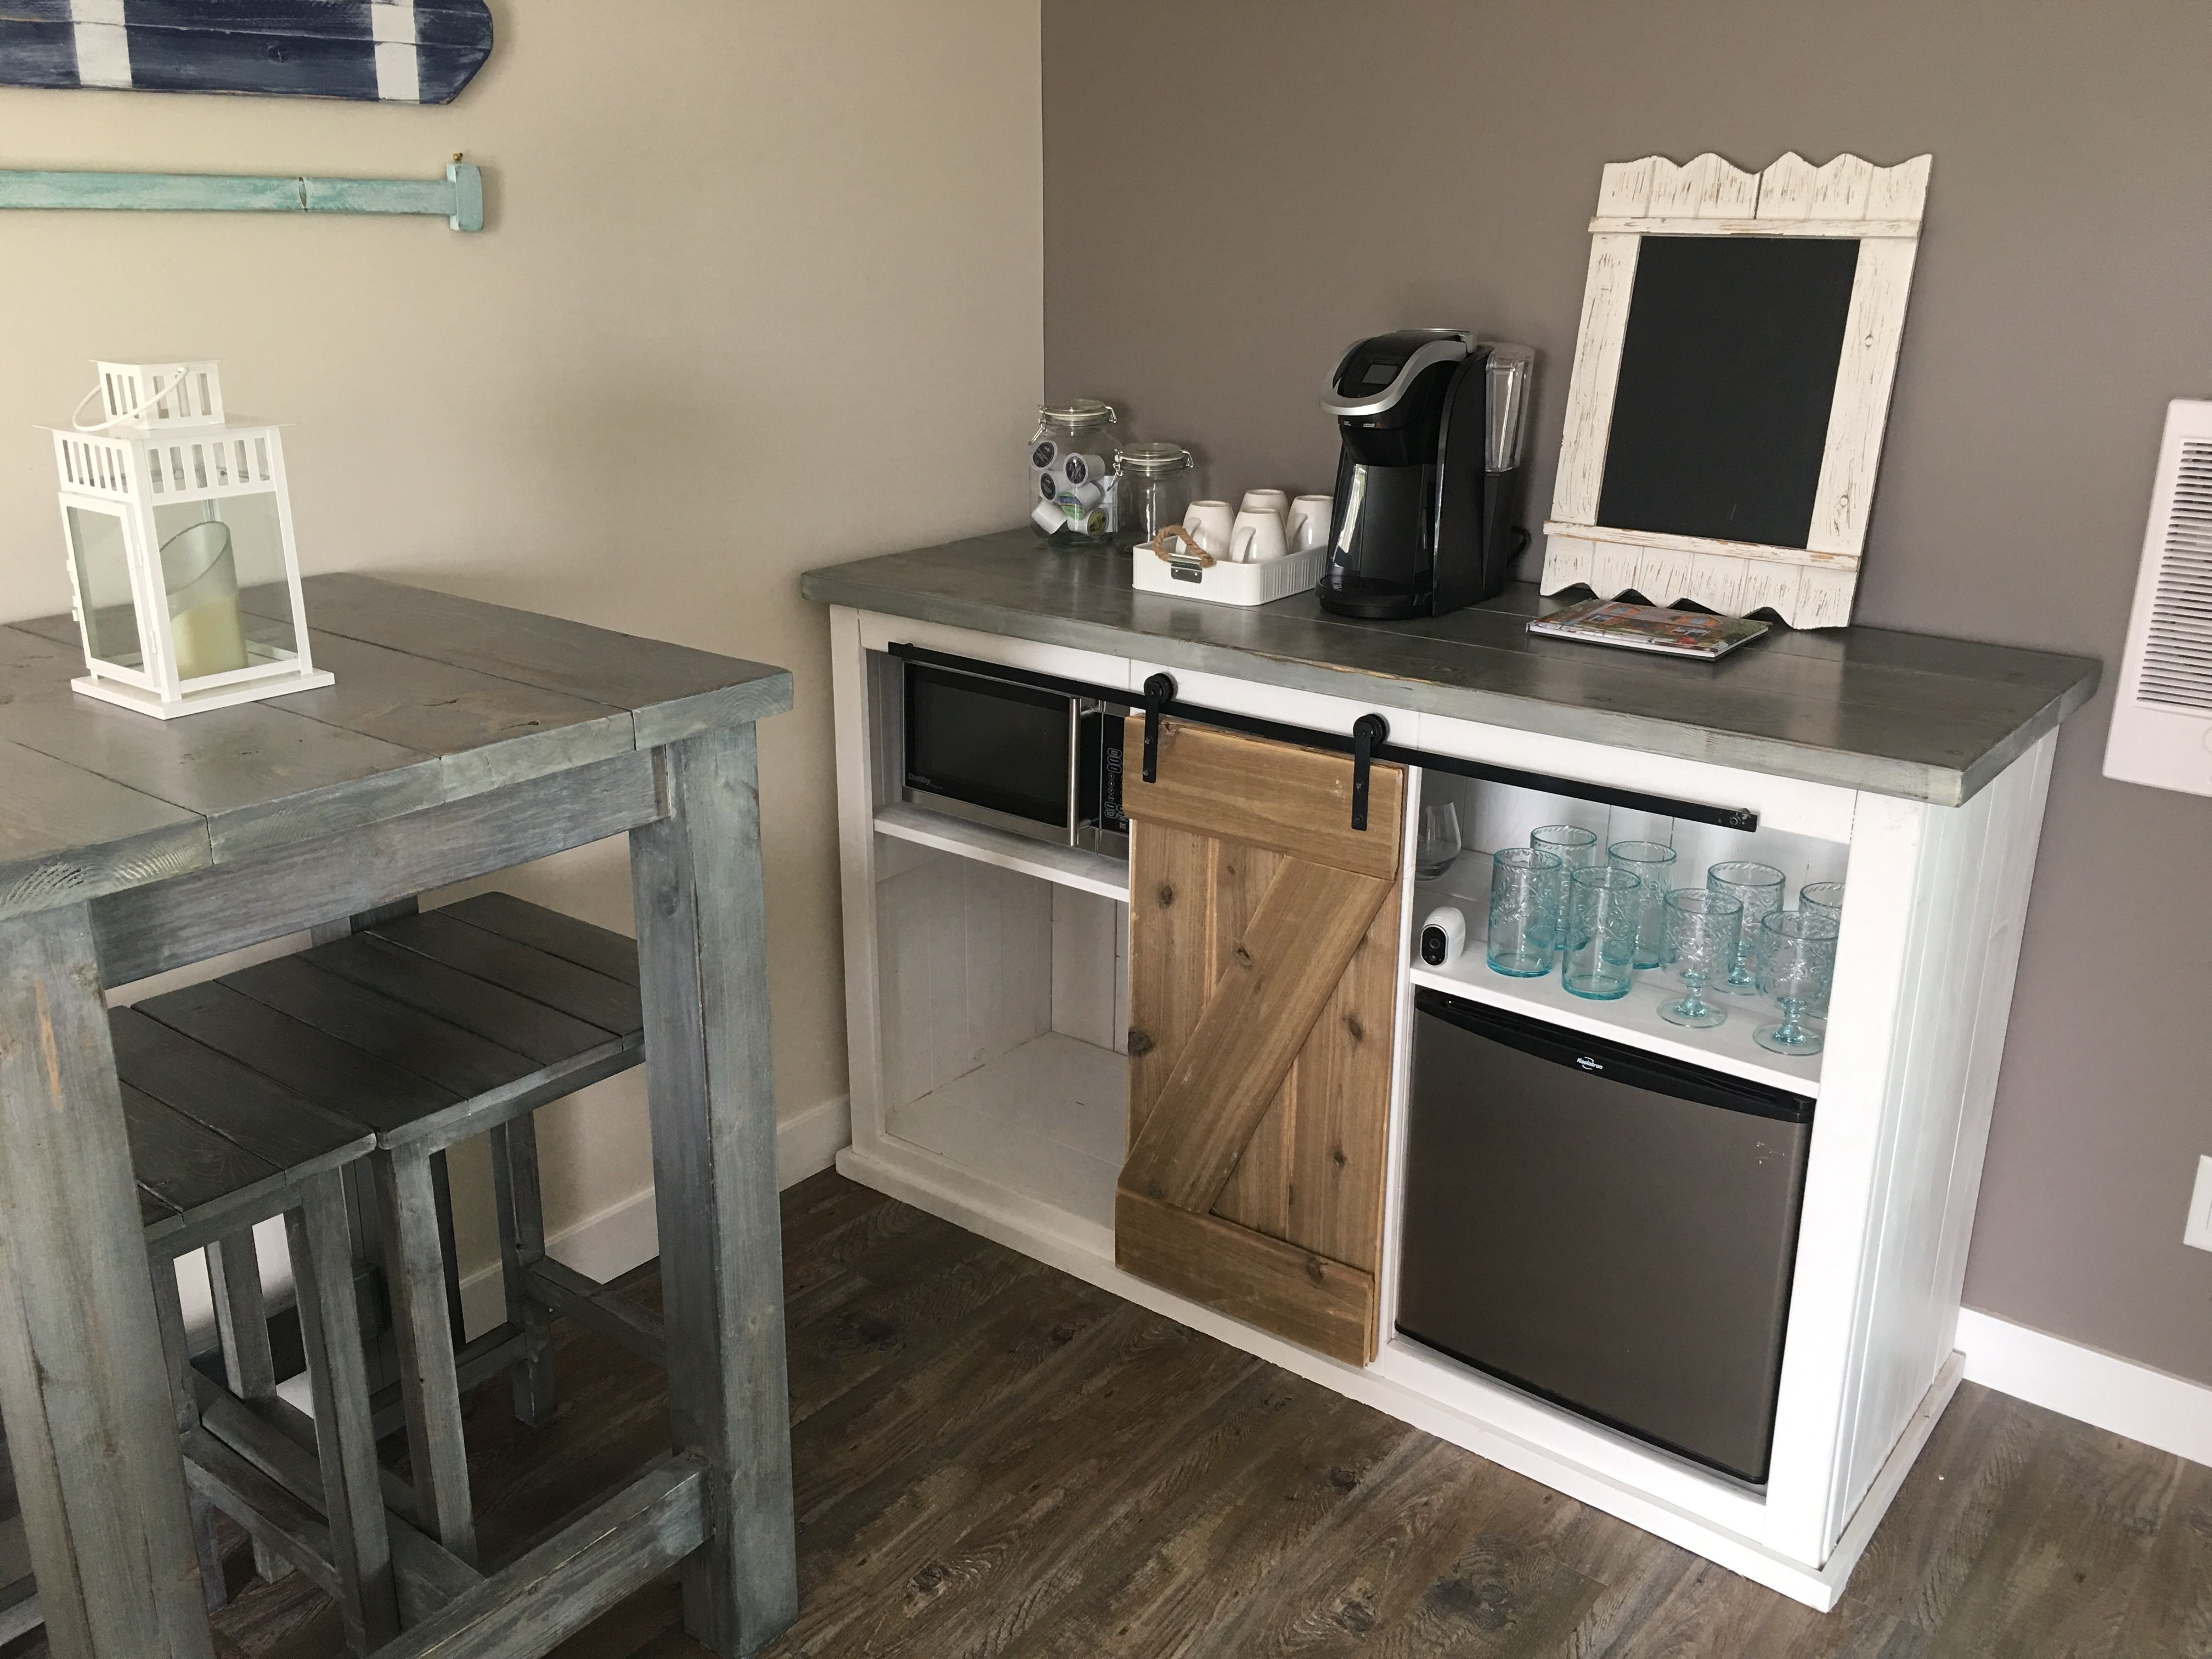 Cottage mini kitchen do it yourself home projects from ana white cottage mini kitchen do it yourself home projects from ana white solutioingenieria Choice Image